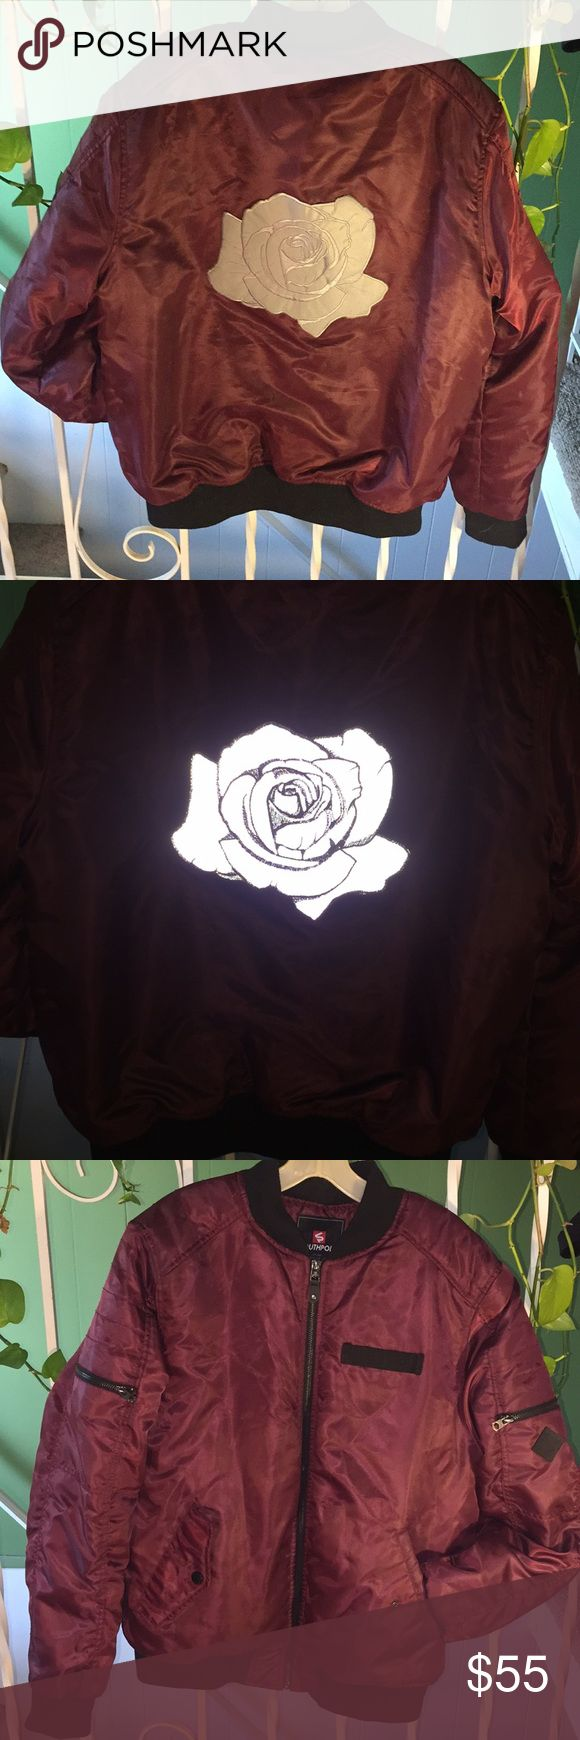 Men's Custom Maroon Patchwork Bomber Jacket Men's Large Maroon Bomber Jacket with Custom Reflective 3M Silver Rose Patch from InnerDecay 💎💣 Lights up brightly under any direct light source, including headlights and camera flashes 📸 Patch is about 9 inches across. Jacket was originally $50 and patch was $30. South Pole Jackets & Coats Bomber & Varsity